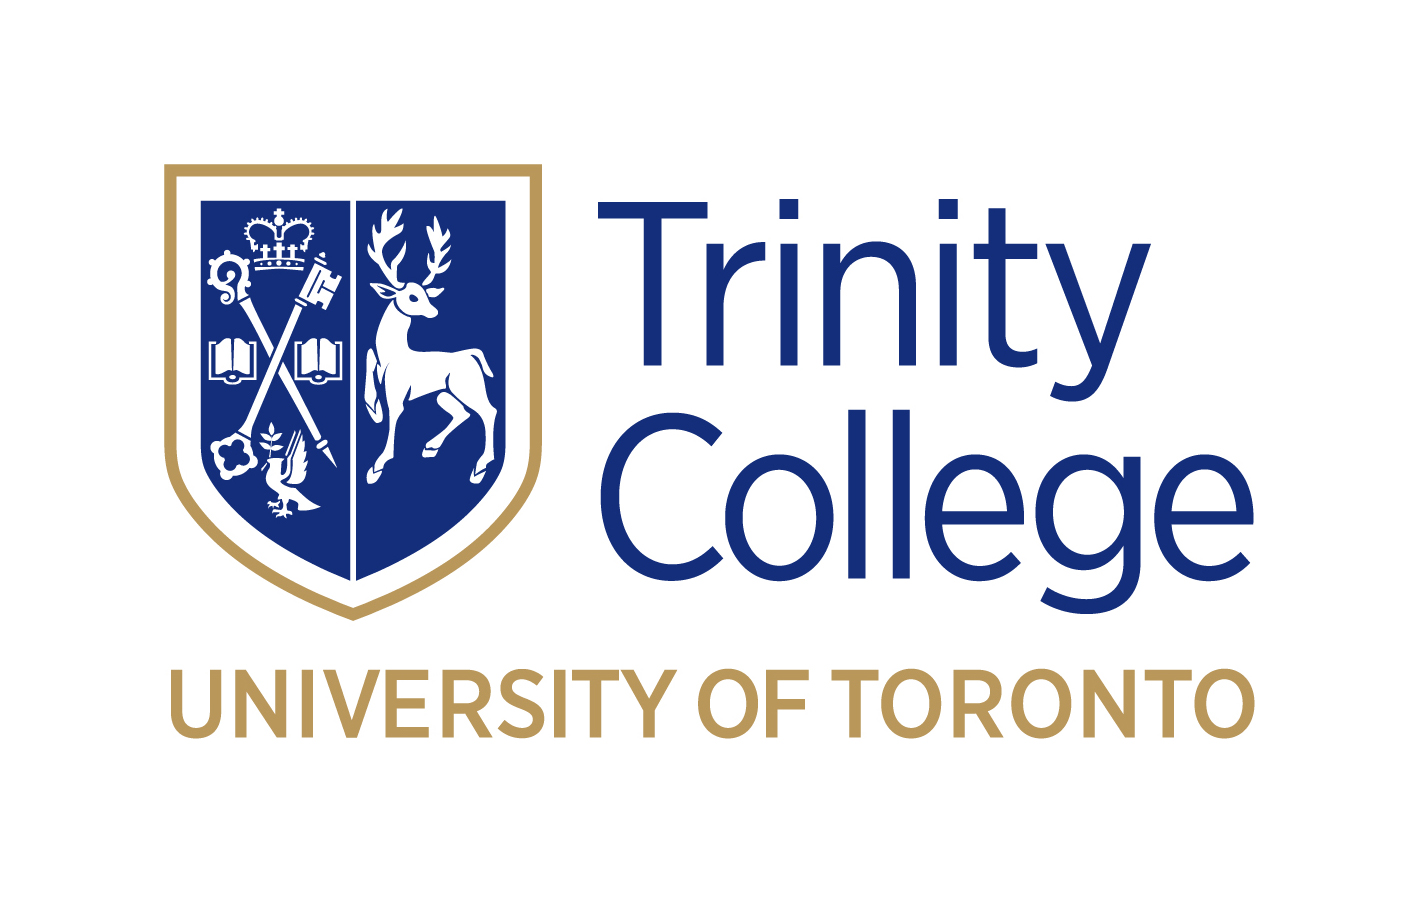 Trinity College in the University of Toronto